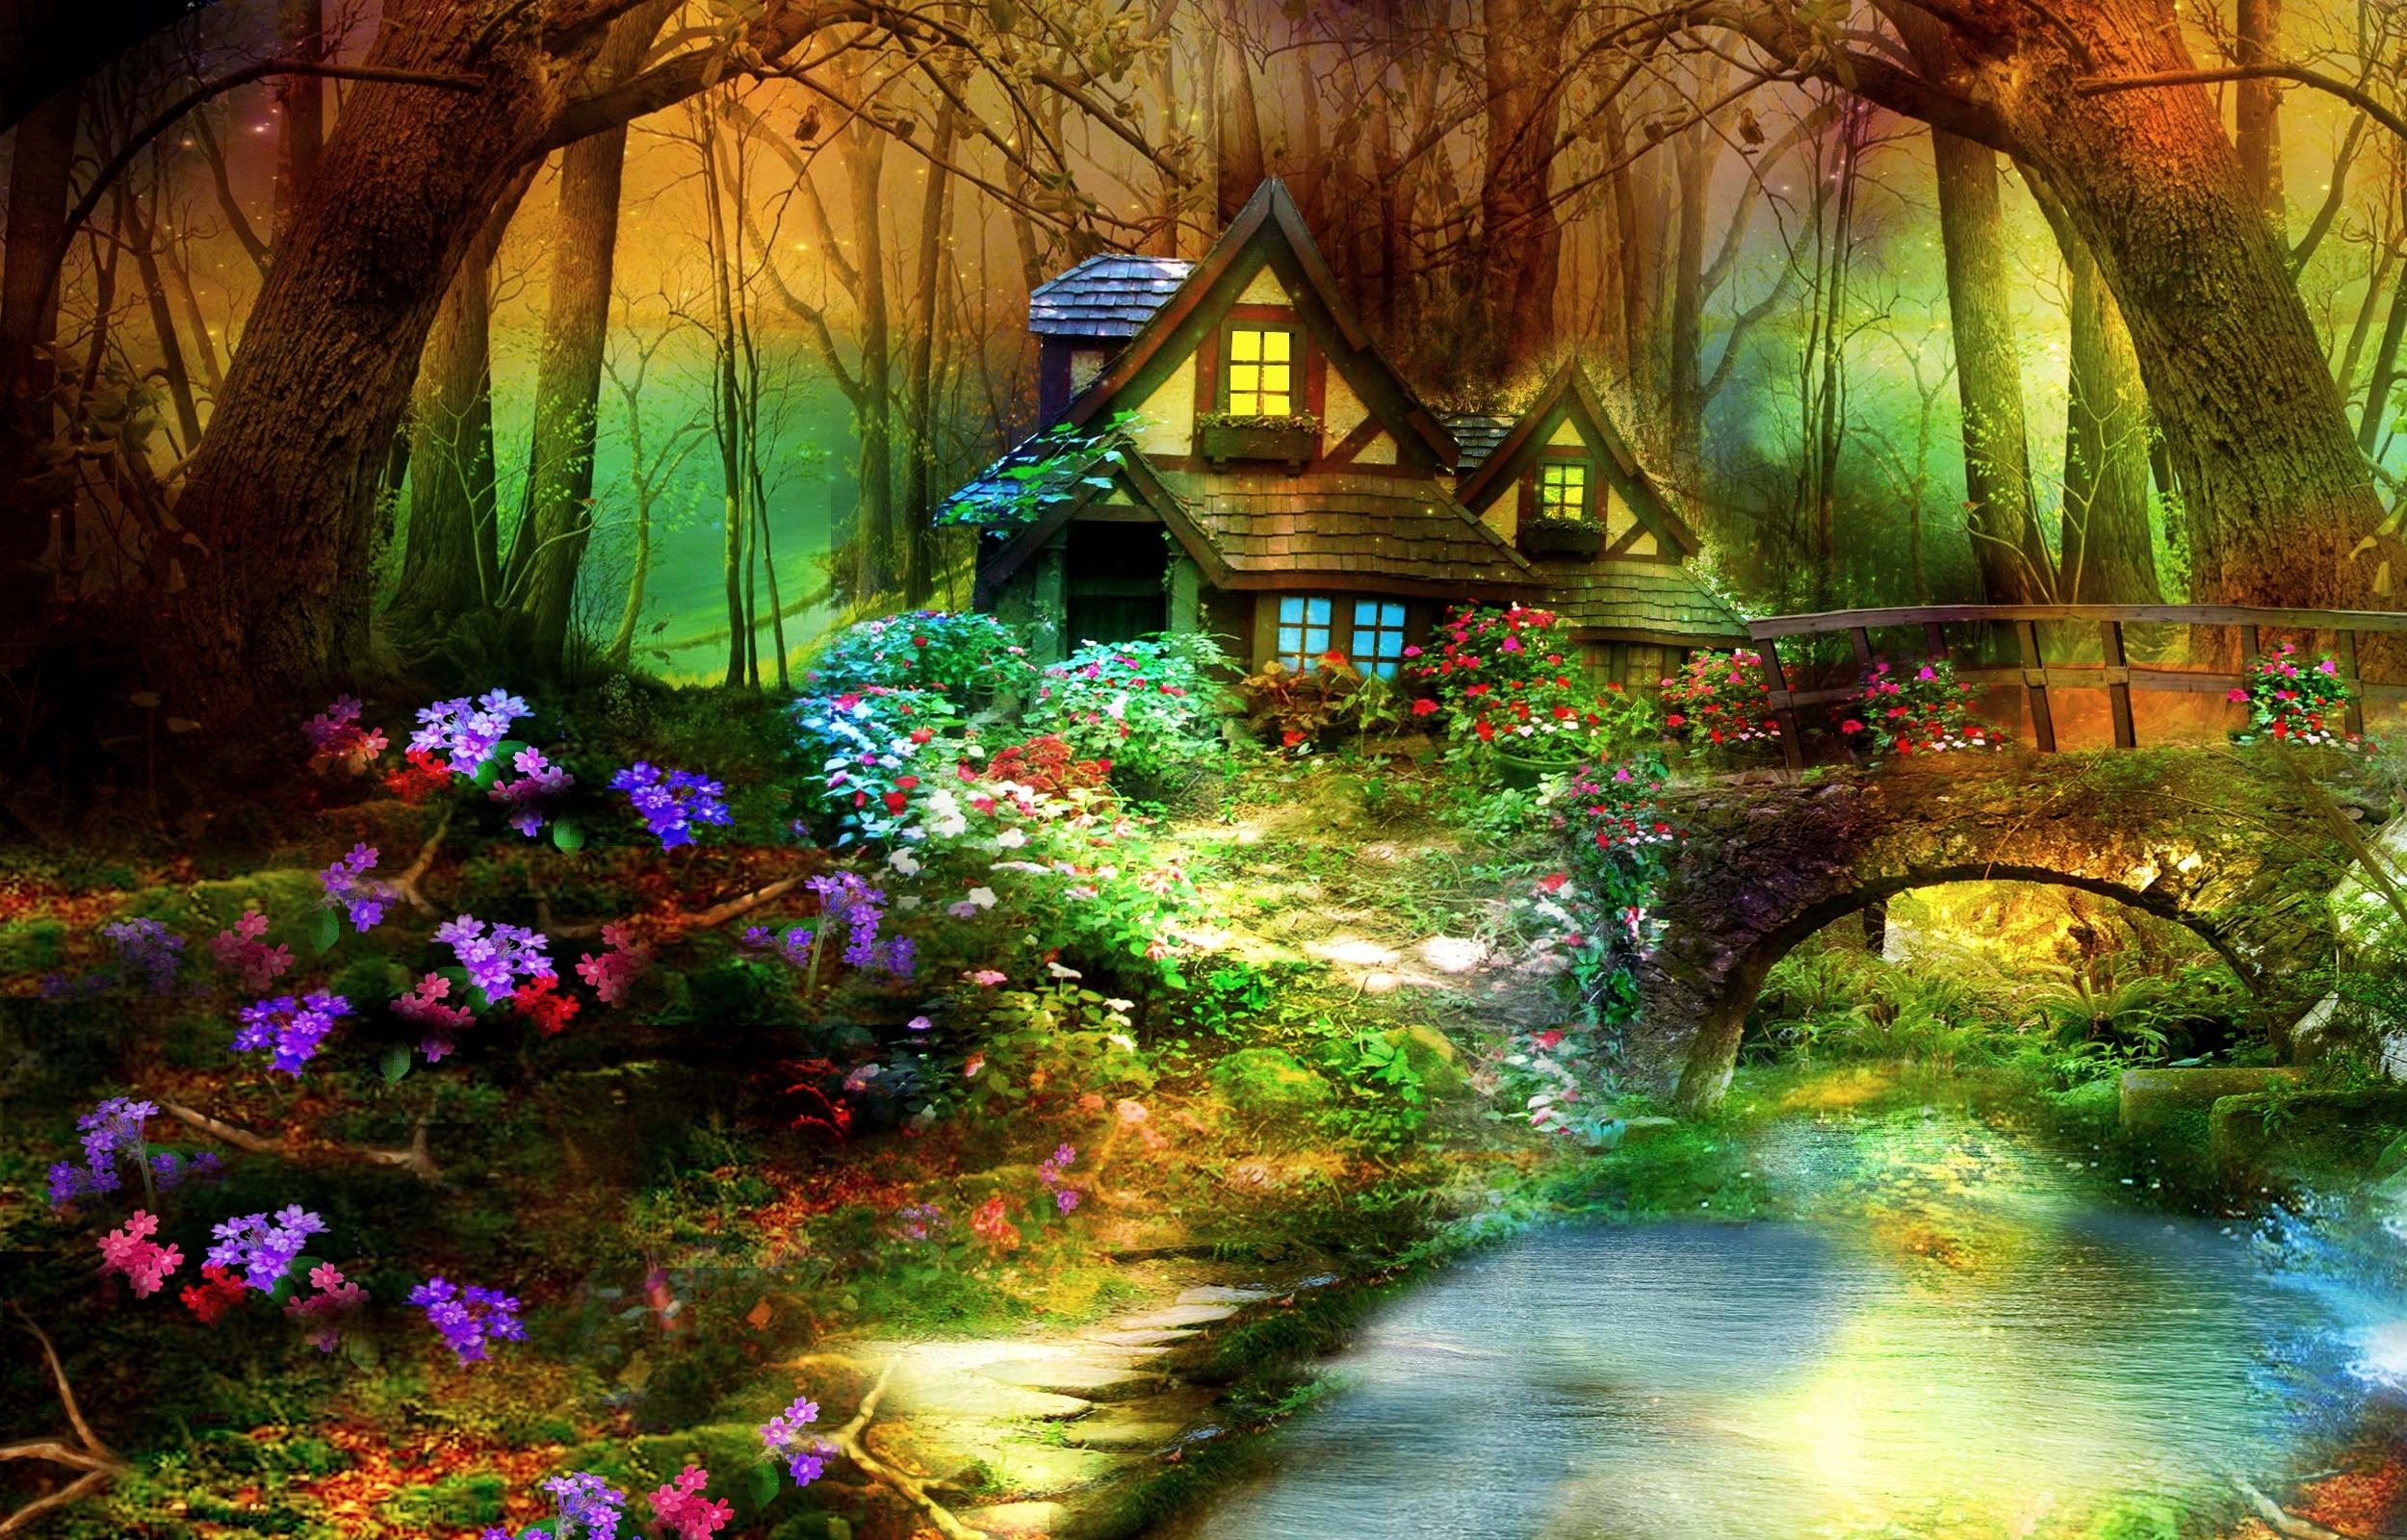 Forest Wallpaper 3d Nature Bridge Spring Fantasy